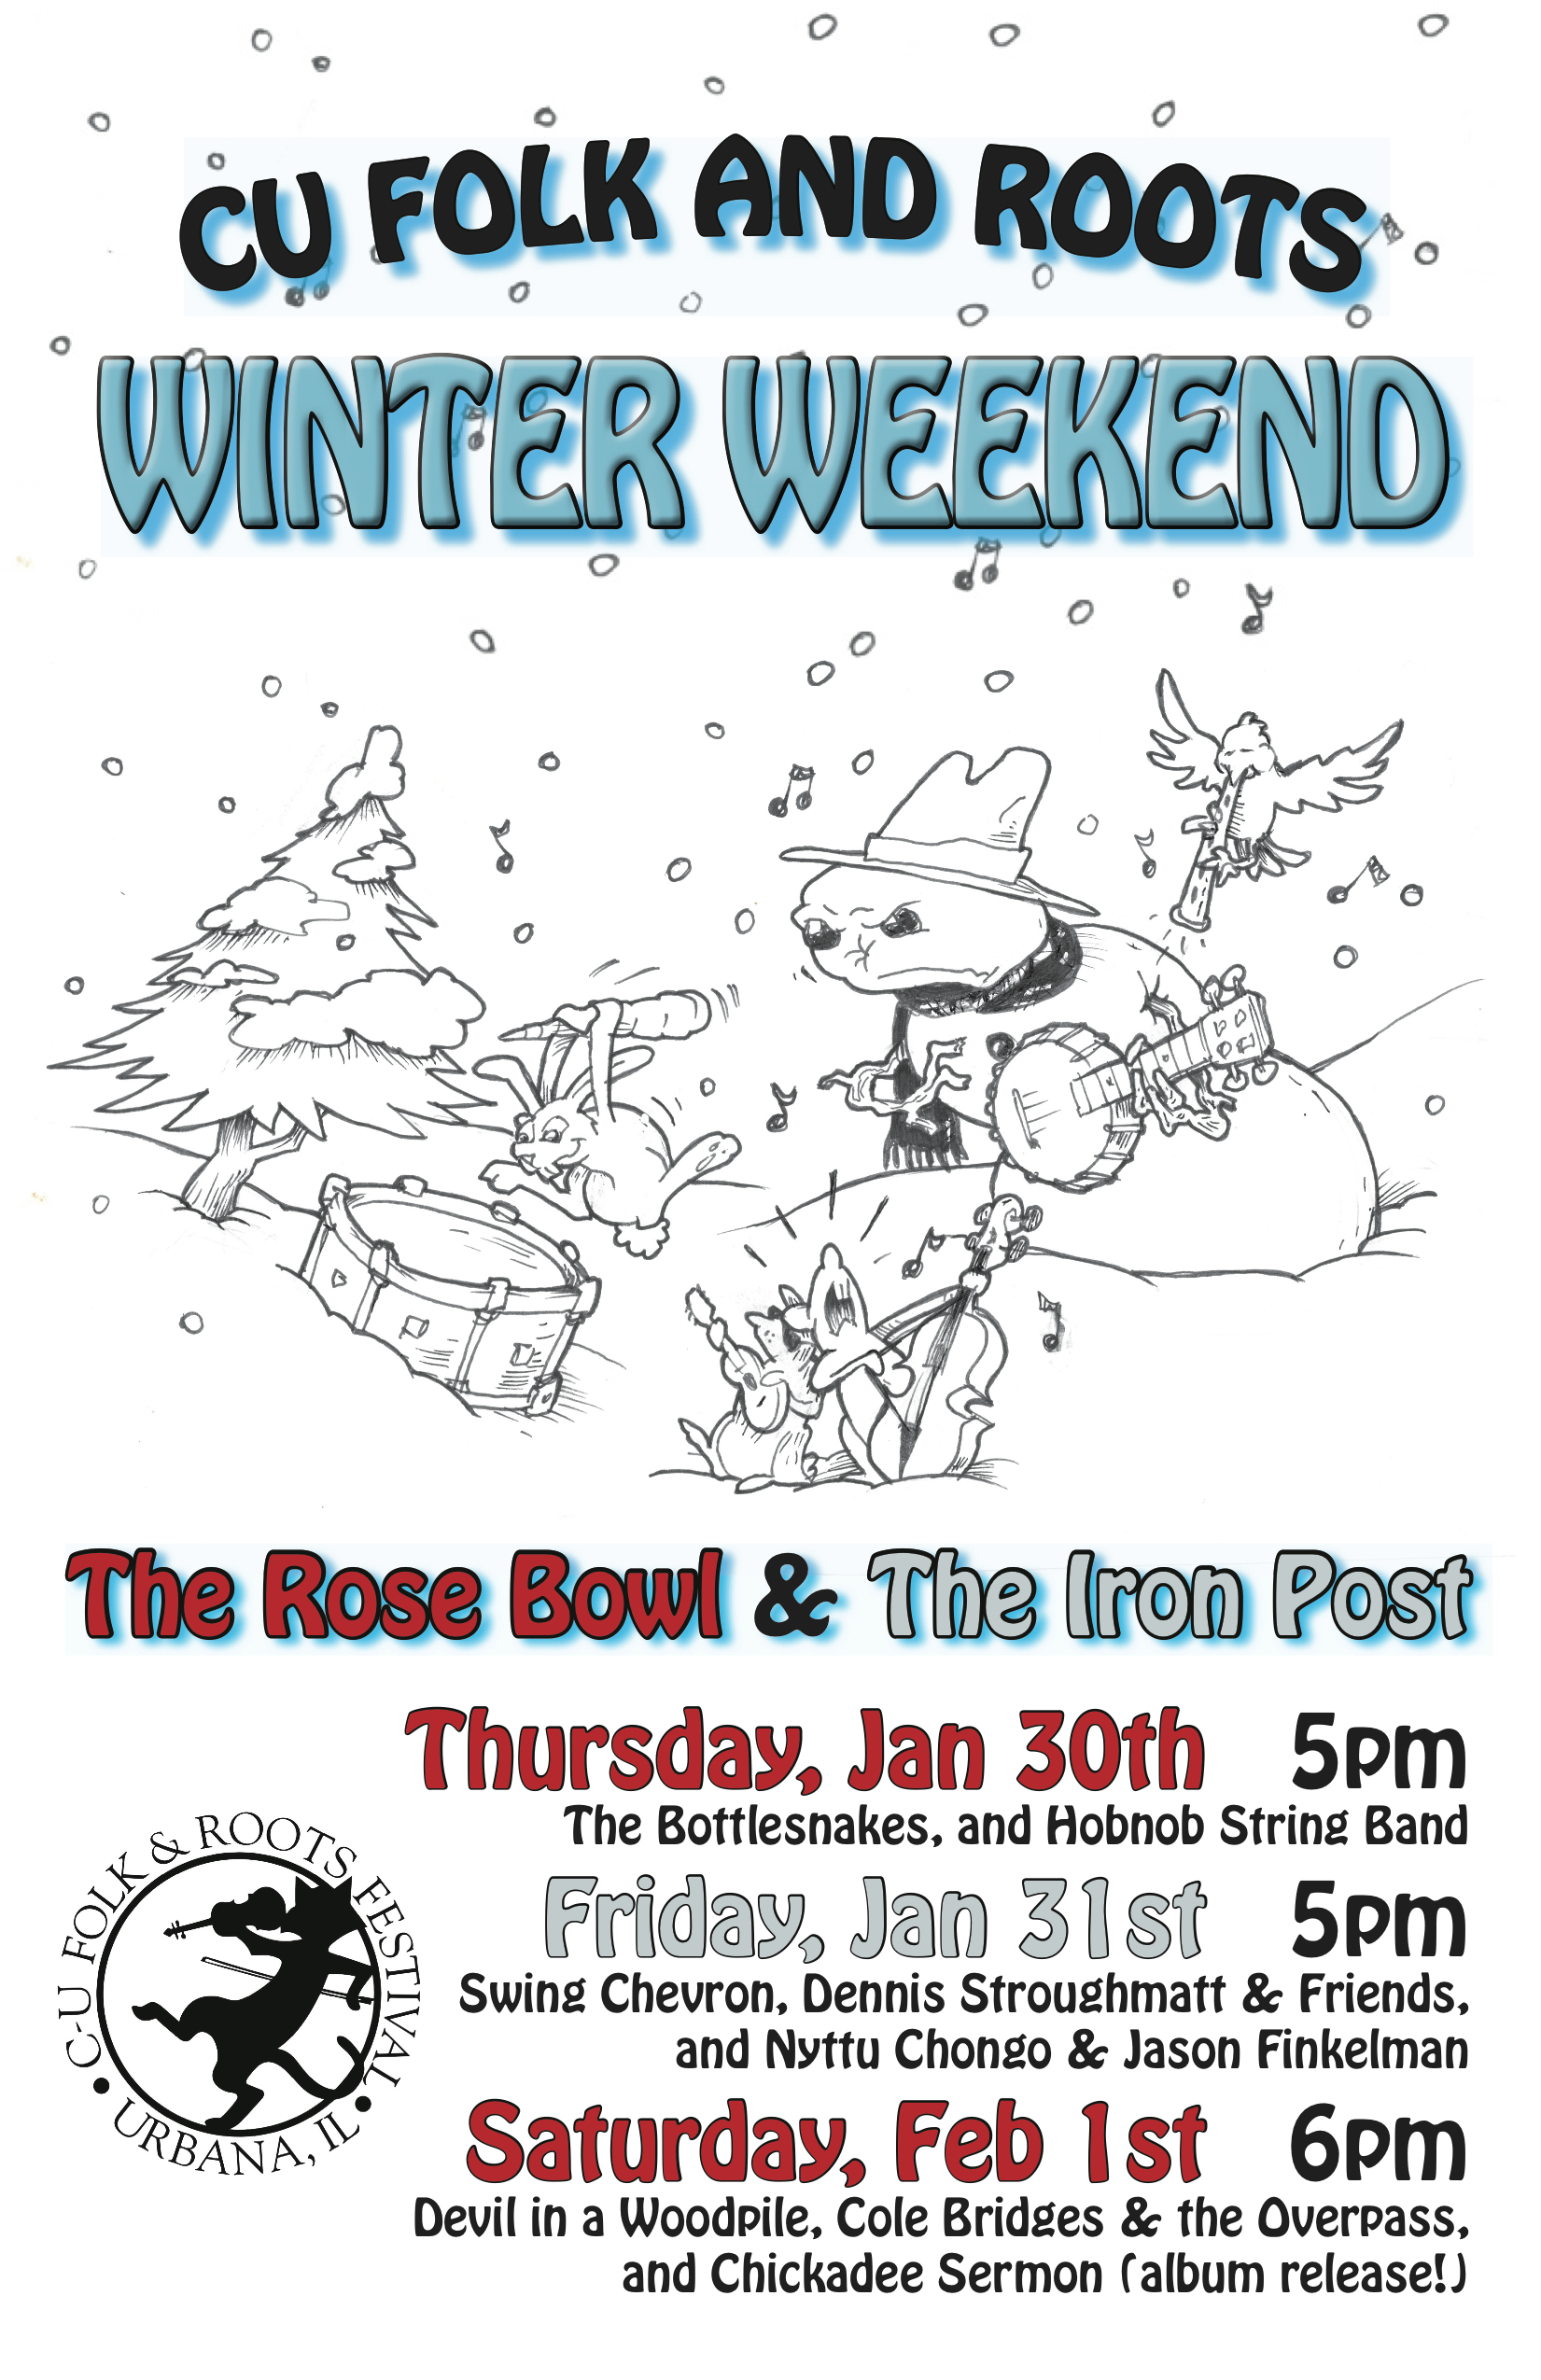 Folk & Roots Winter Weekend: The Bottlesnakes and Hobnob String Band @ Rose Bowl